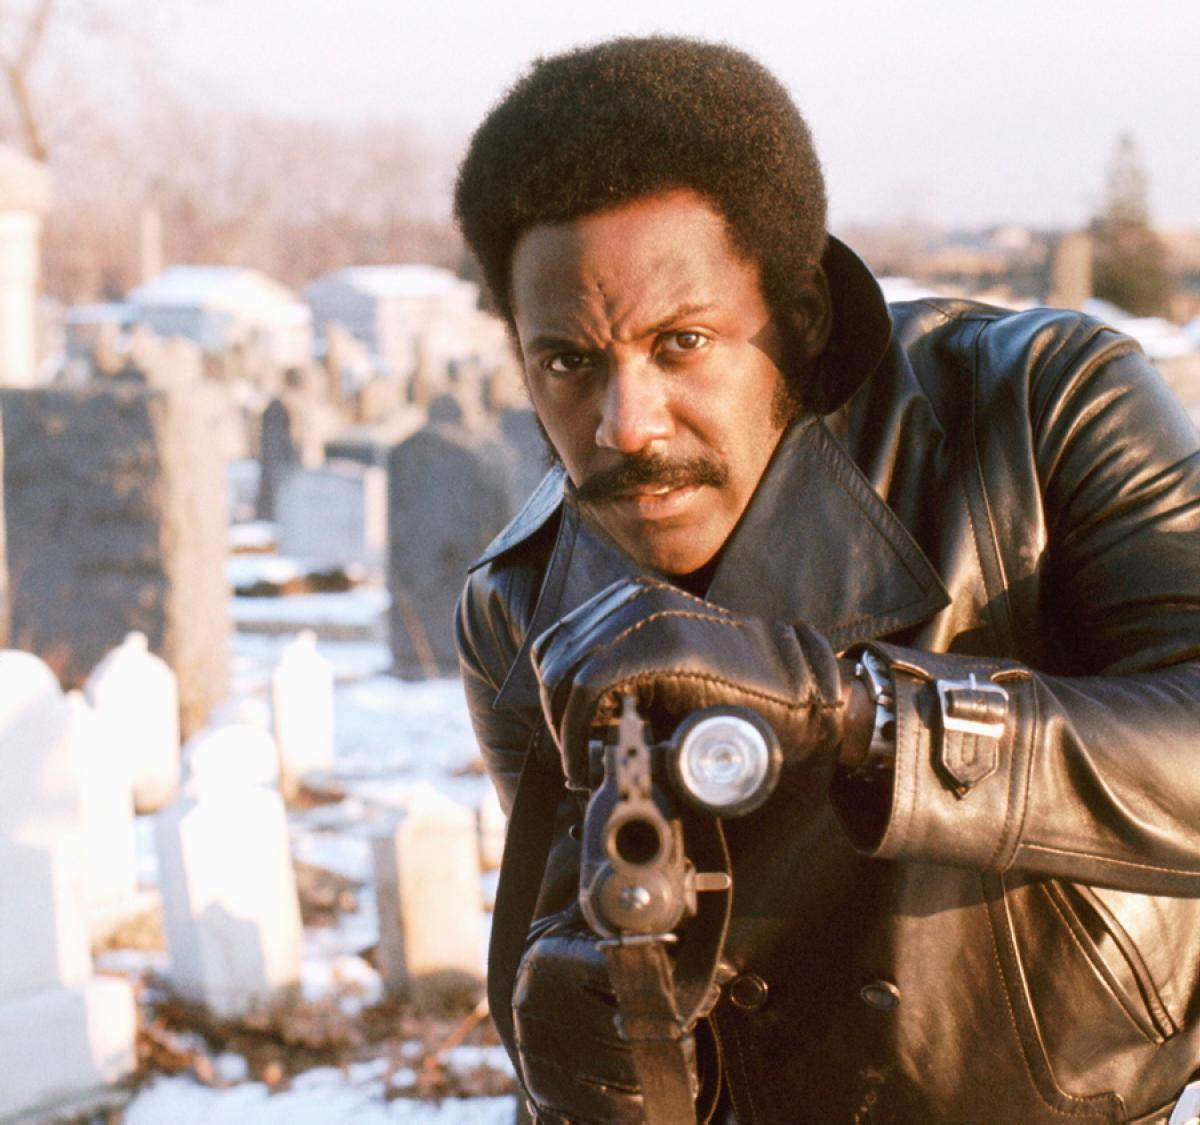 who played shaft in the original movie